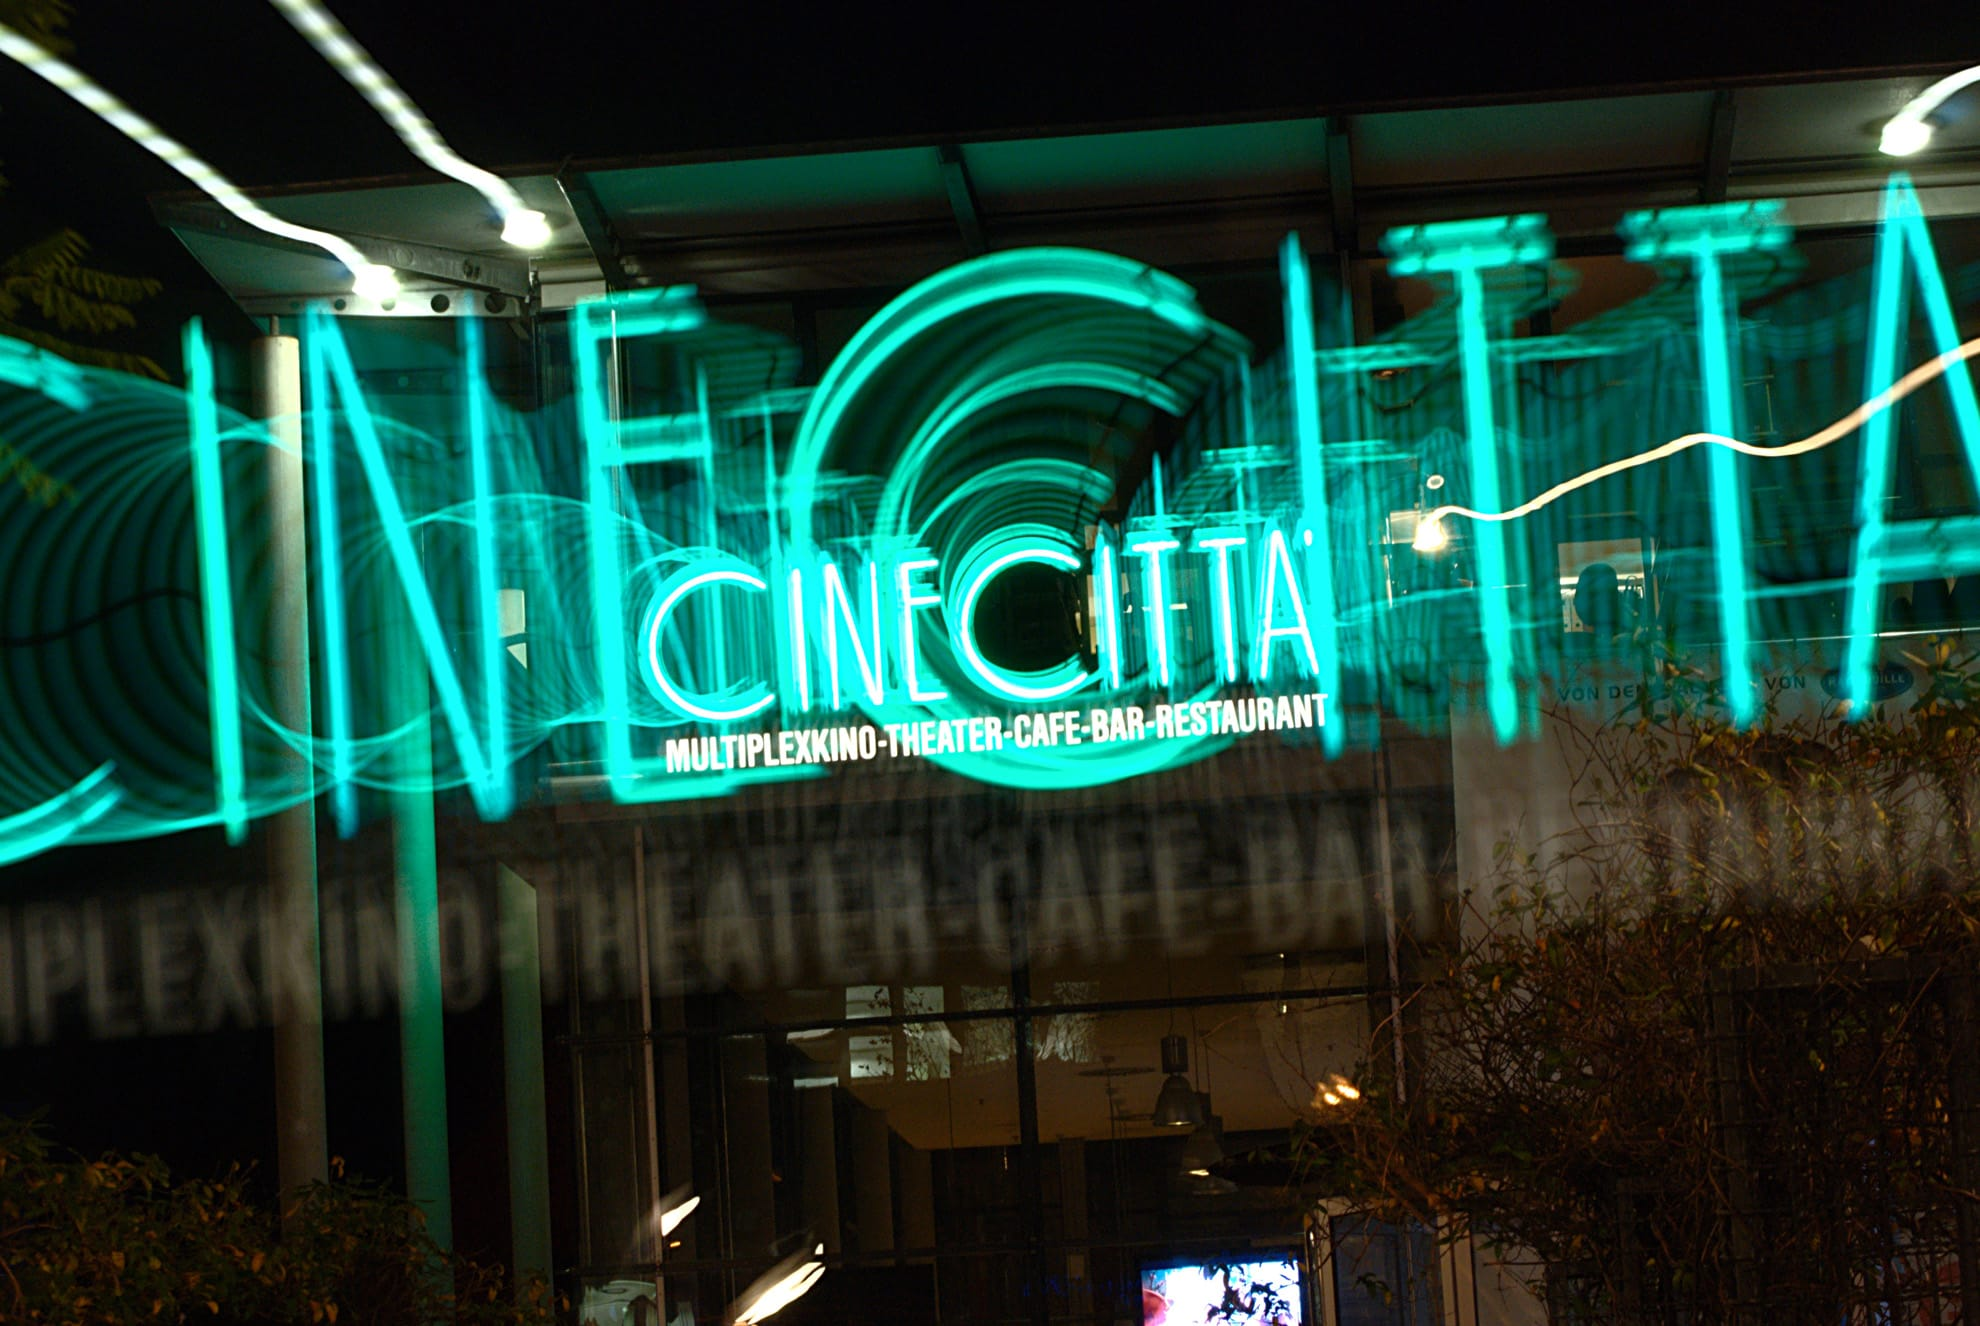 The Green Neon Sign outside the Cinecittà in Nuremberg, Germany